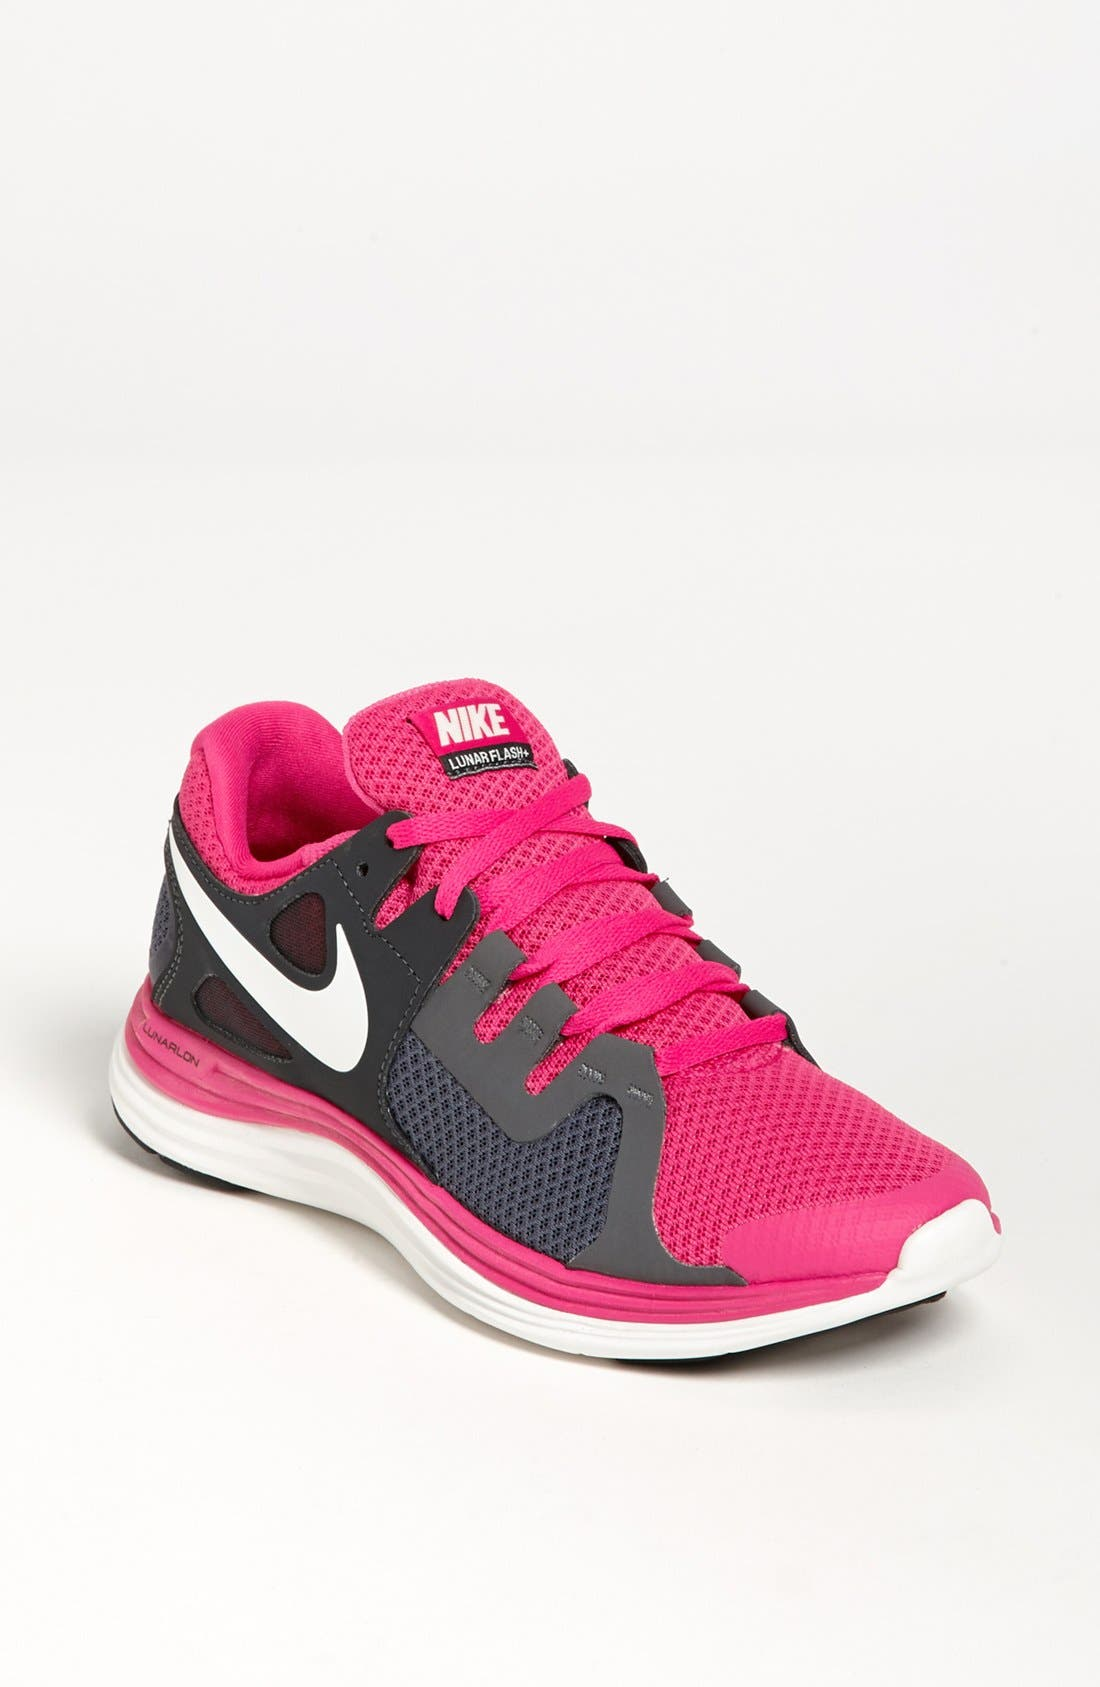 Alternate Image 1 Selected - Nike 'Lunarflash' Running Shoe (Women)